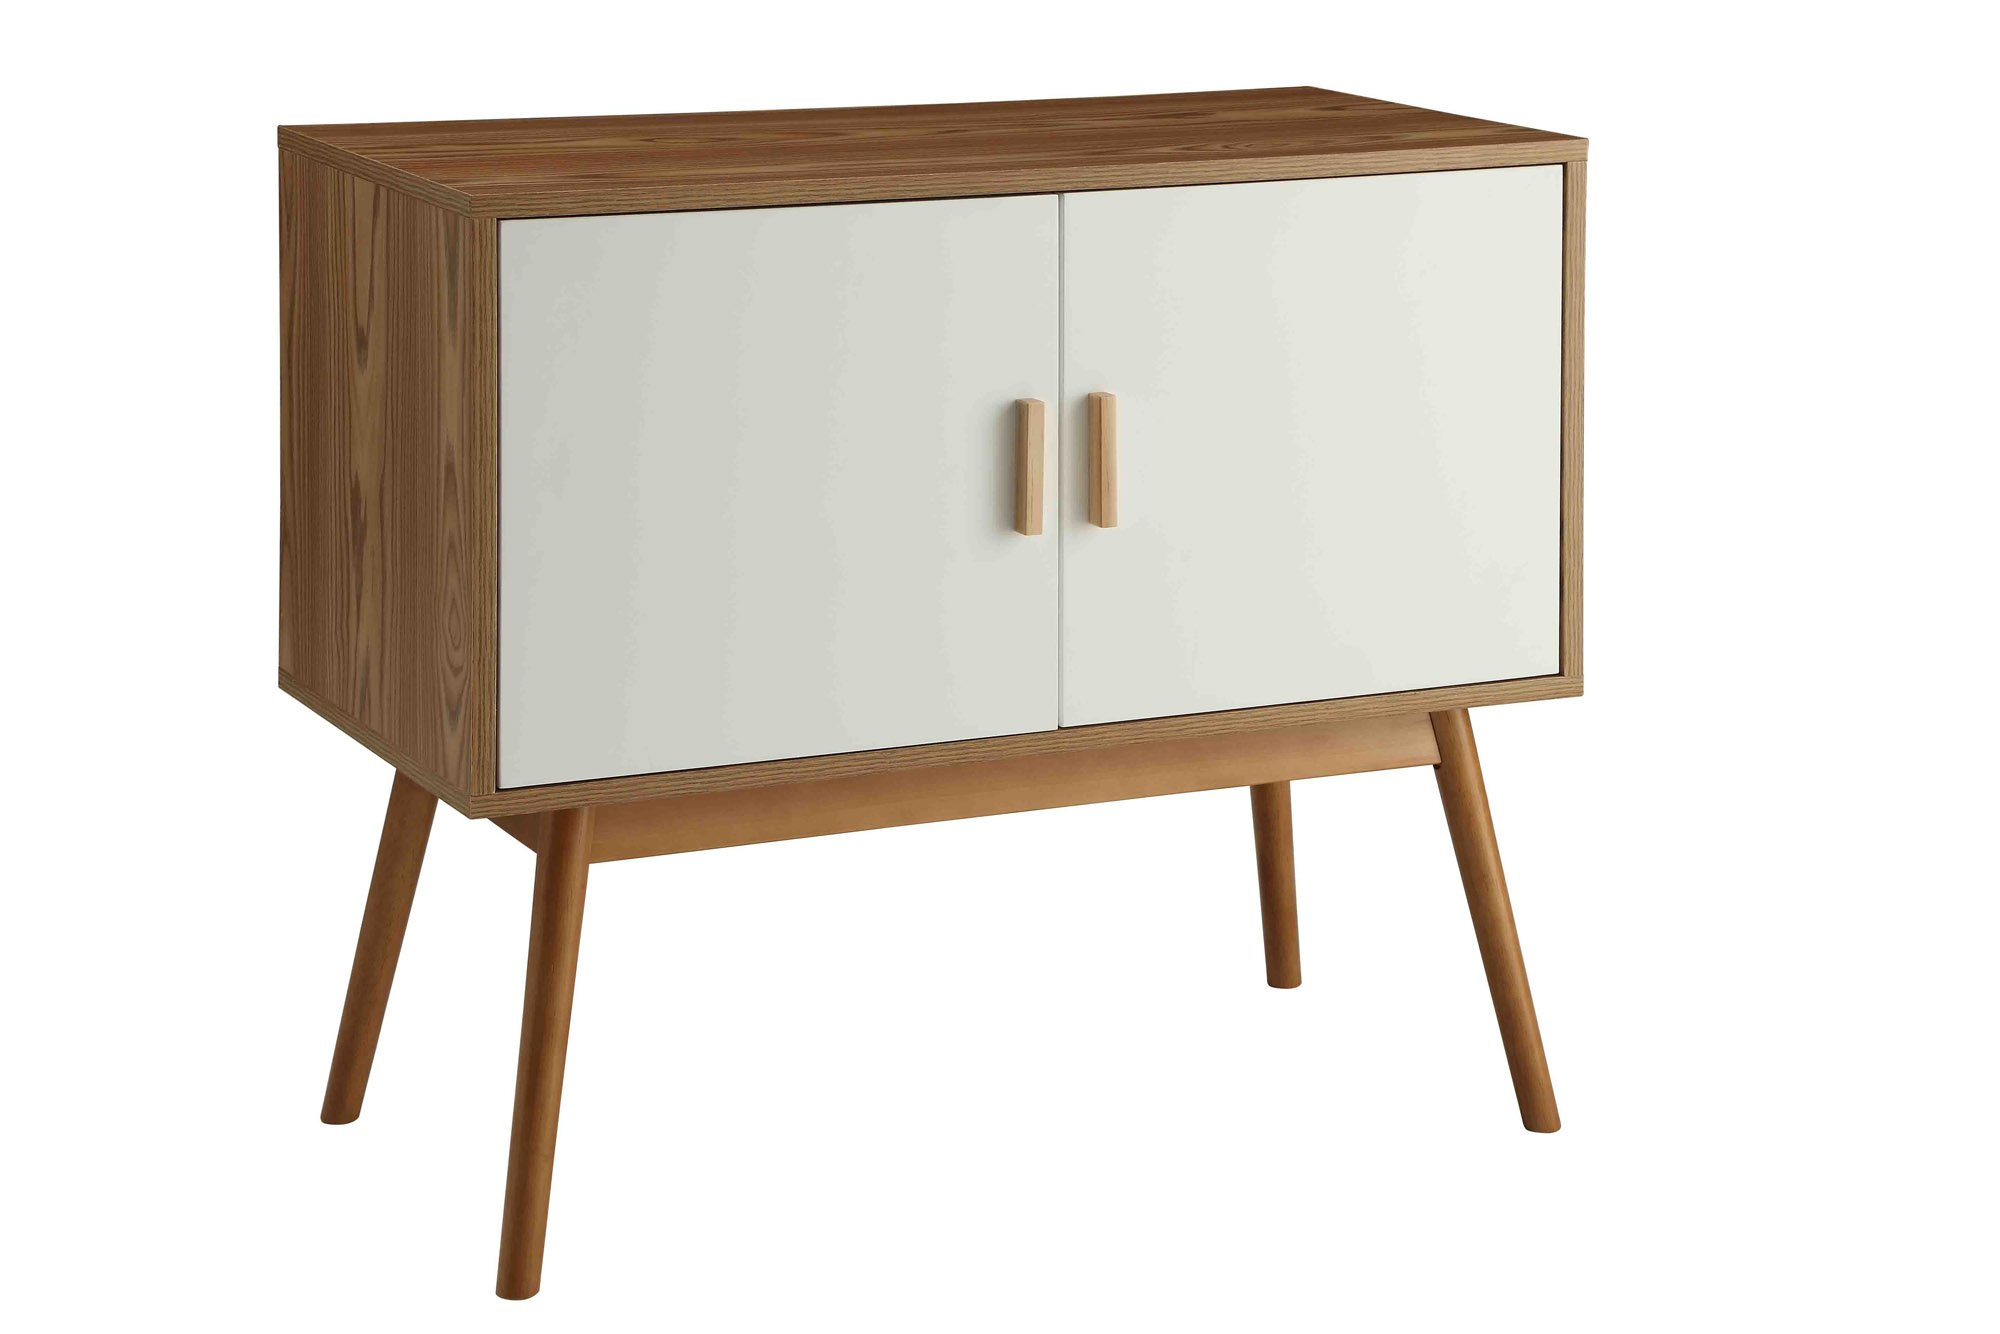 Convenience Concepts 203199 Oslo Storage Console, White by Convenience Concepts